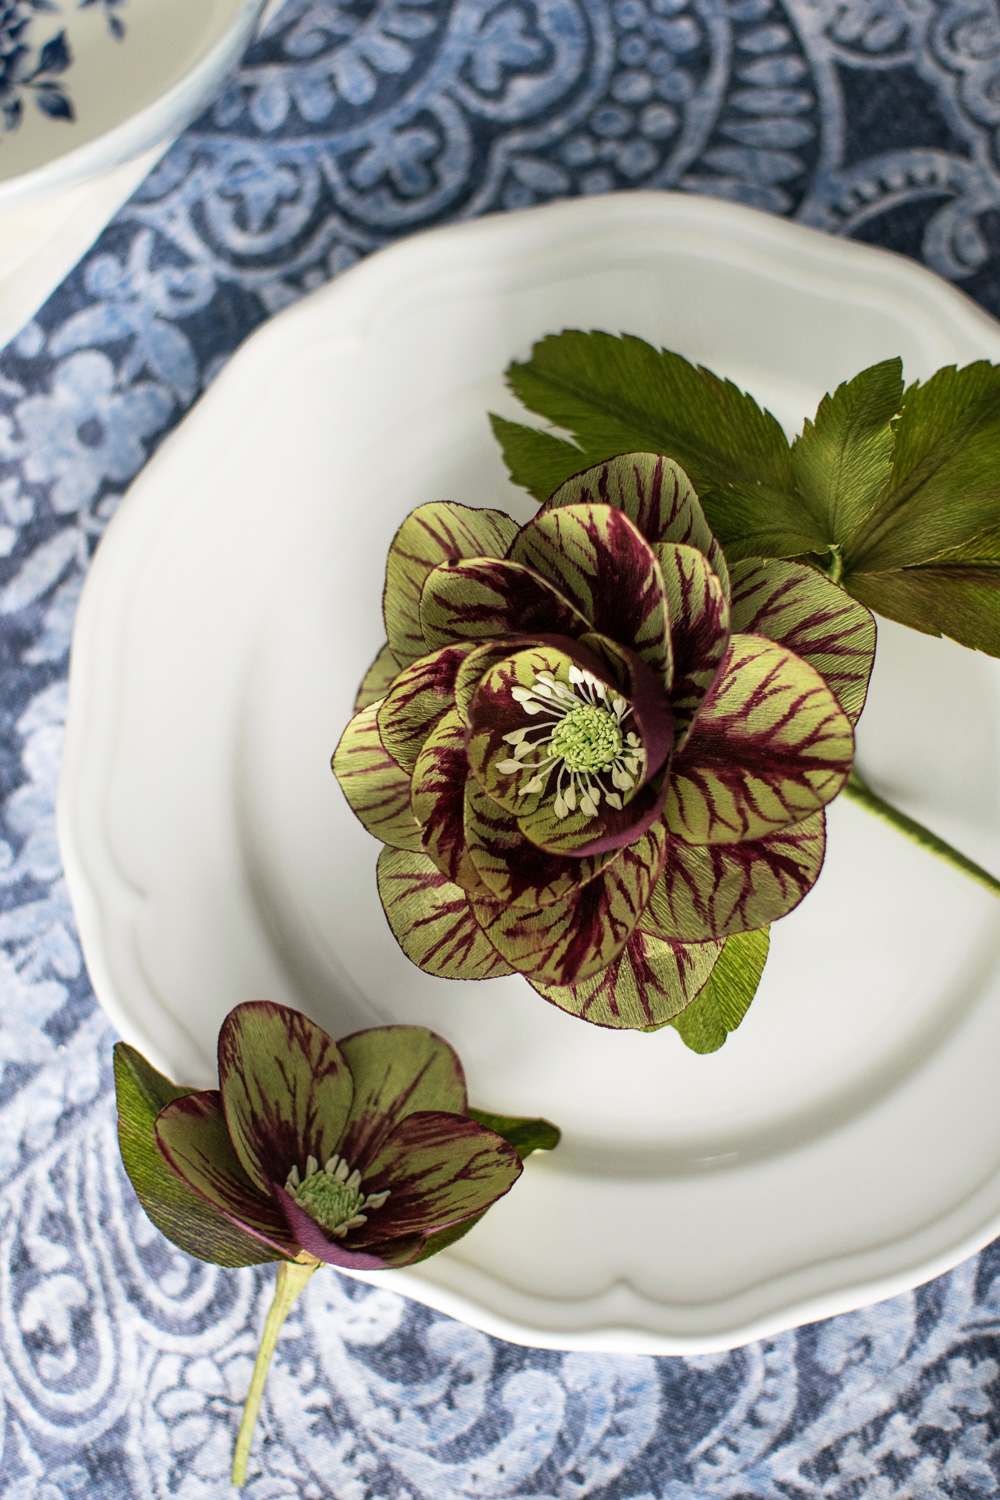 Hellebore-Double-Green-Vein-Paper-flower-by-Crafted-to-Bloom-paperflowers.jpg